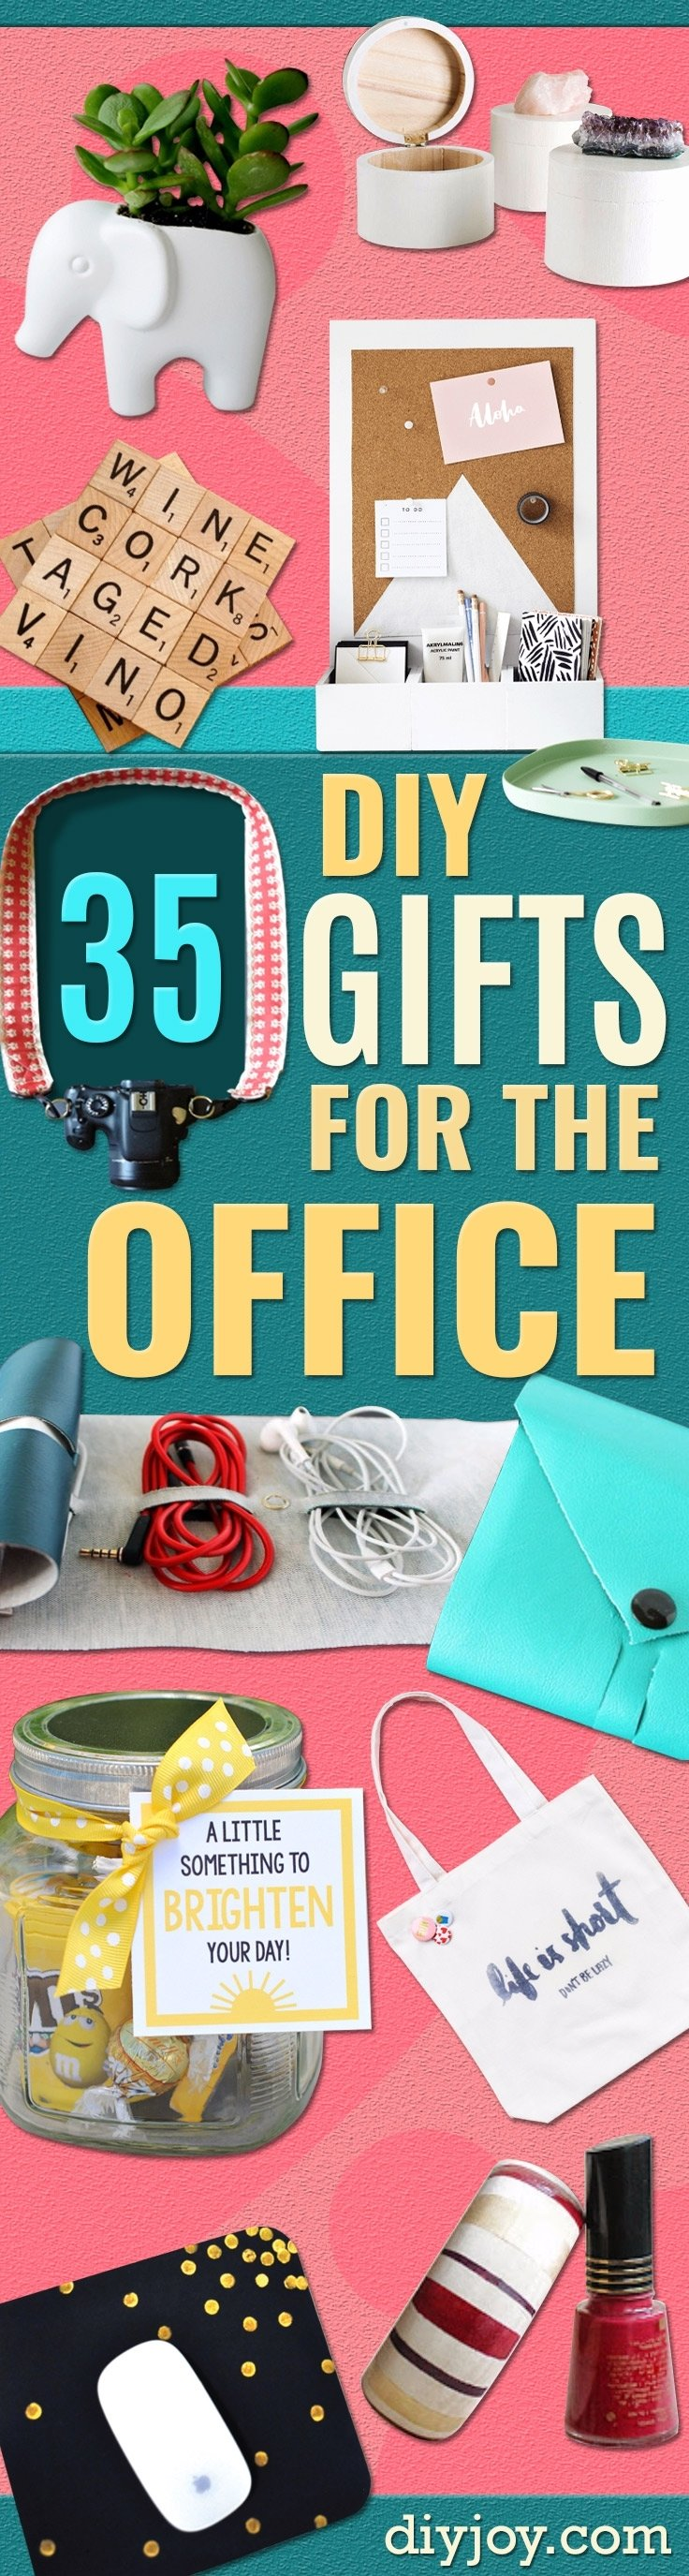 10 Best Gift Ideas For Your Boss 35 cheap and easy gifts for the office 2021